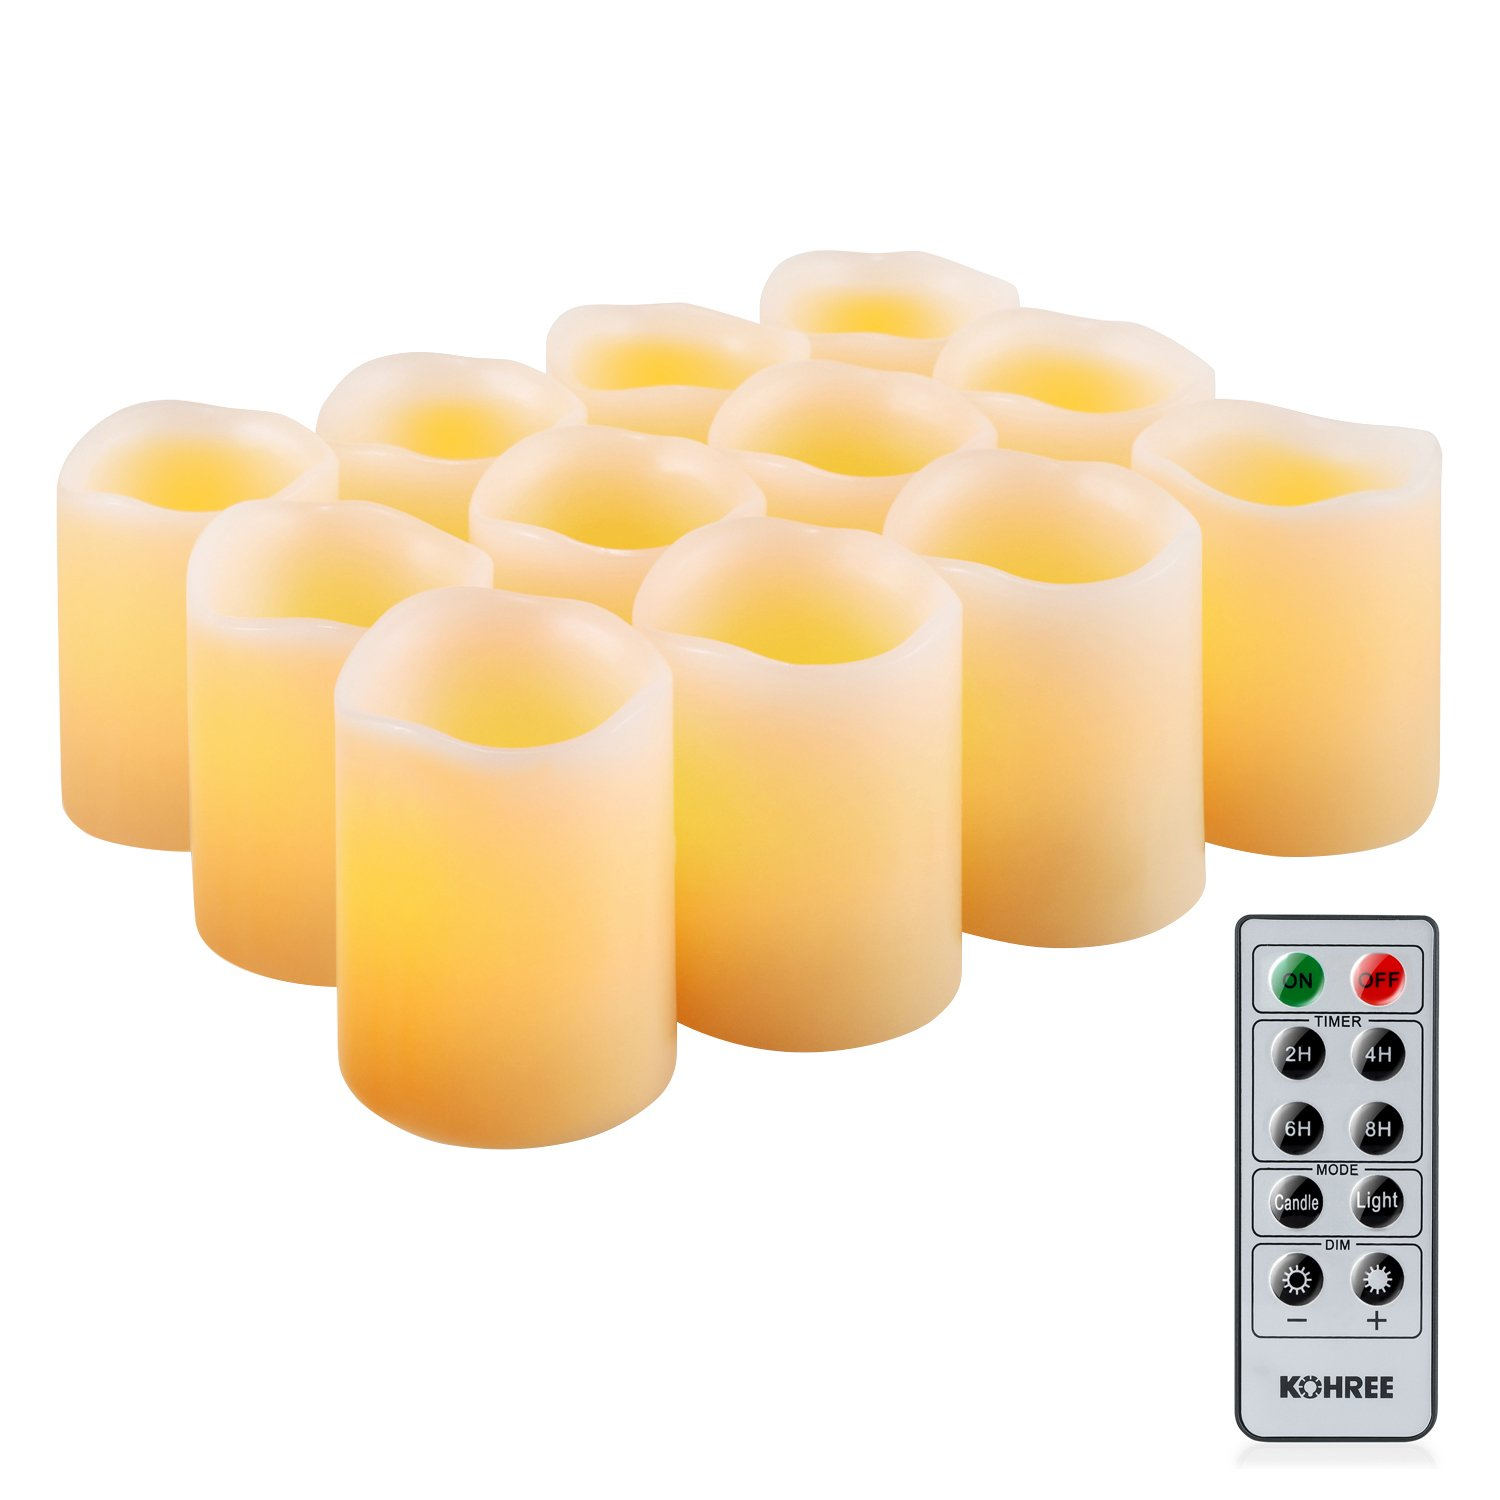 Kohree Flameless LED Candles Real Wax Remote Control Candles Battery Operated Retro Unscented Ivory Votive Pillar Candles Light Warm White Pack of 12